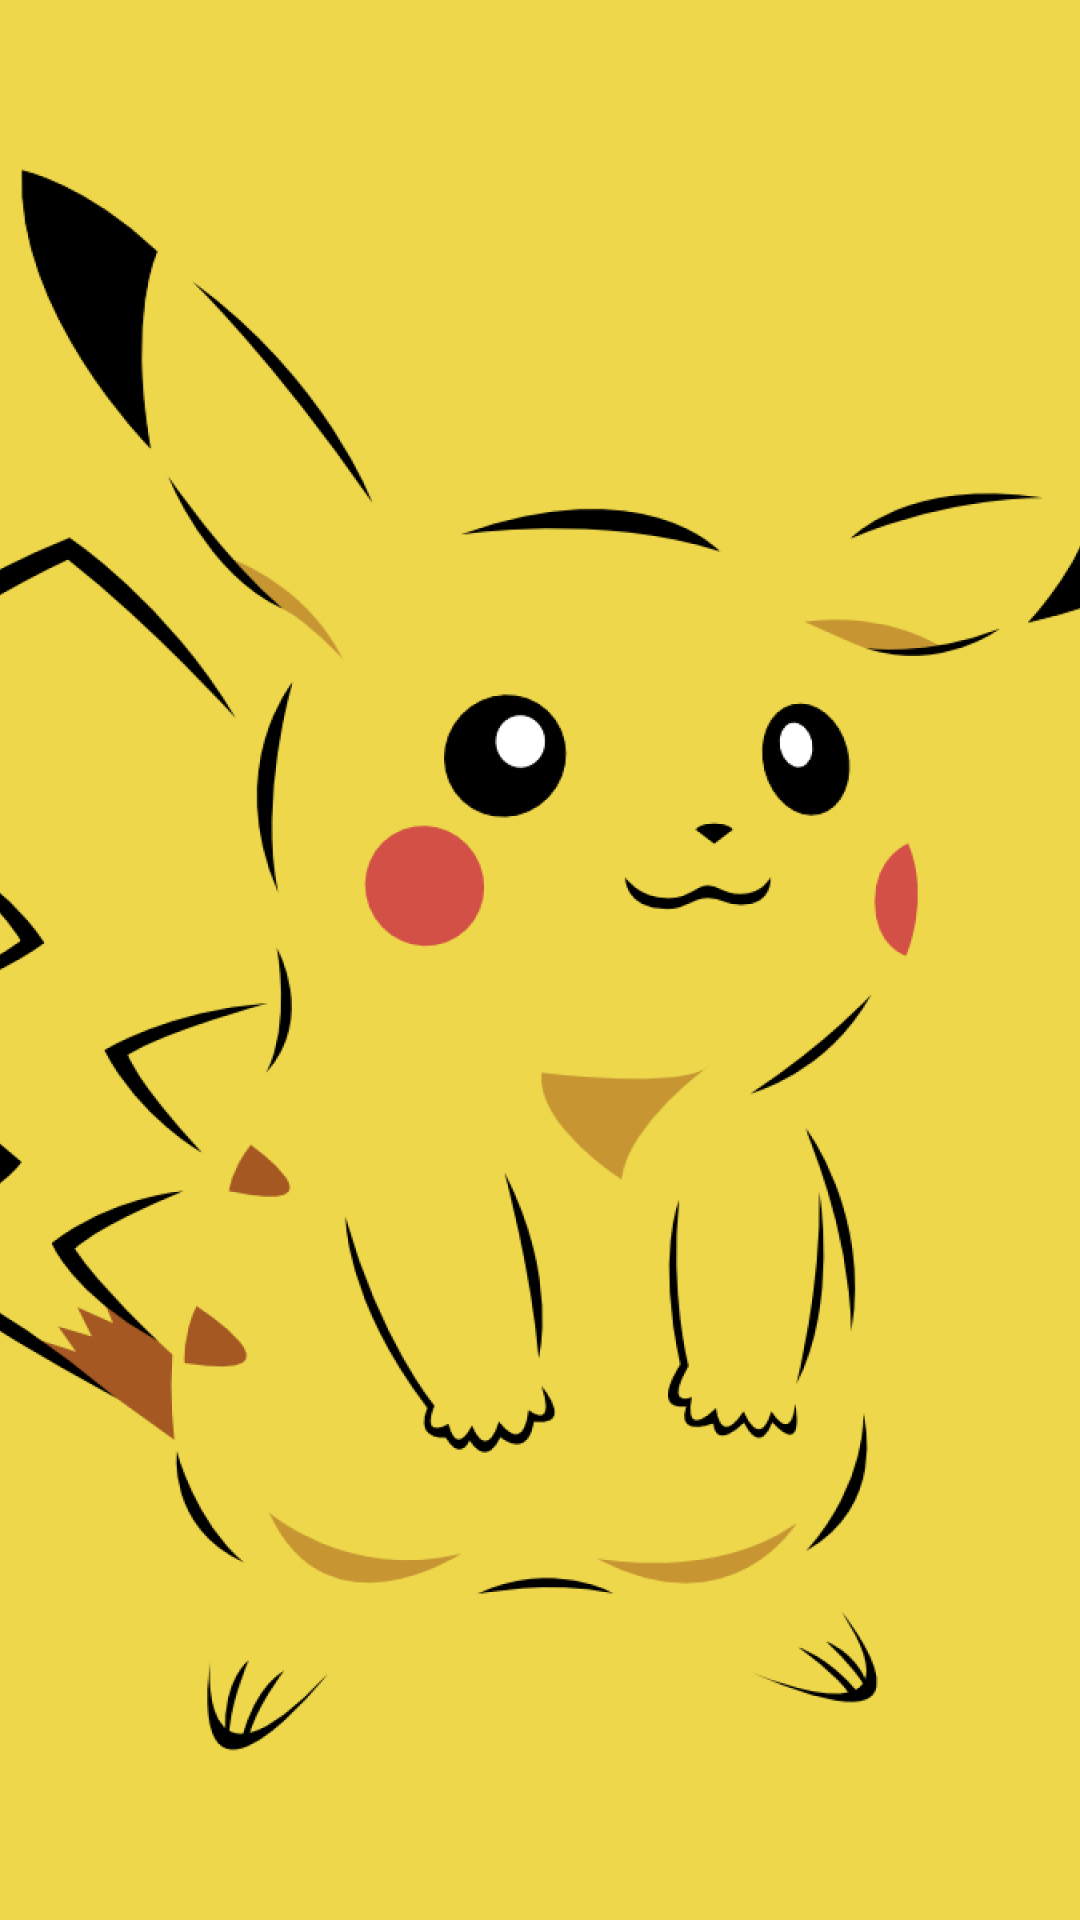 pikachu hd wallpapers for iphone 7 wallpaperspictures